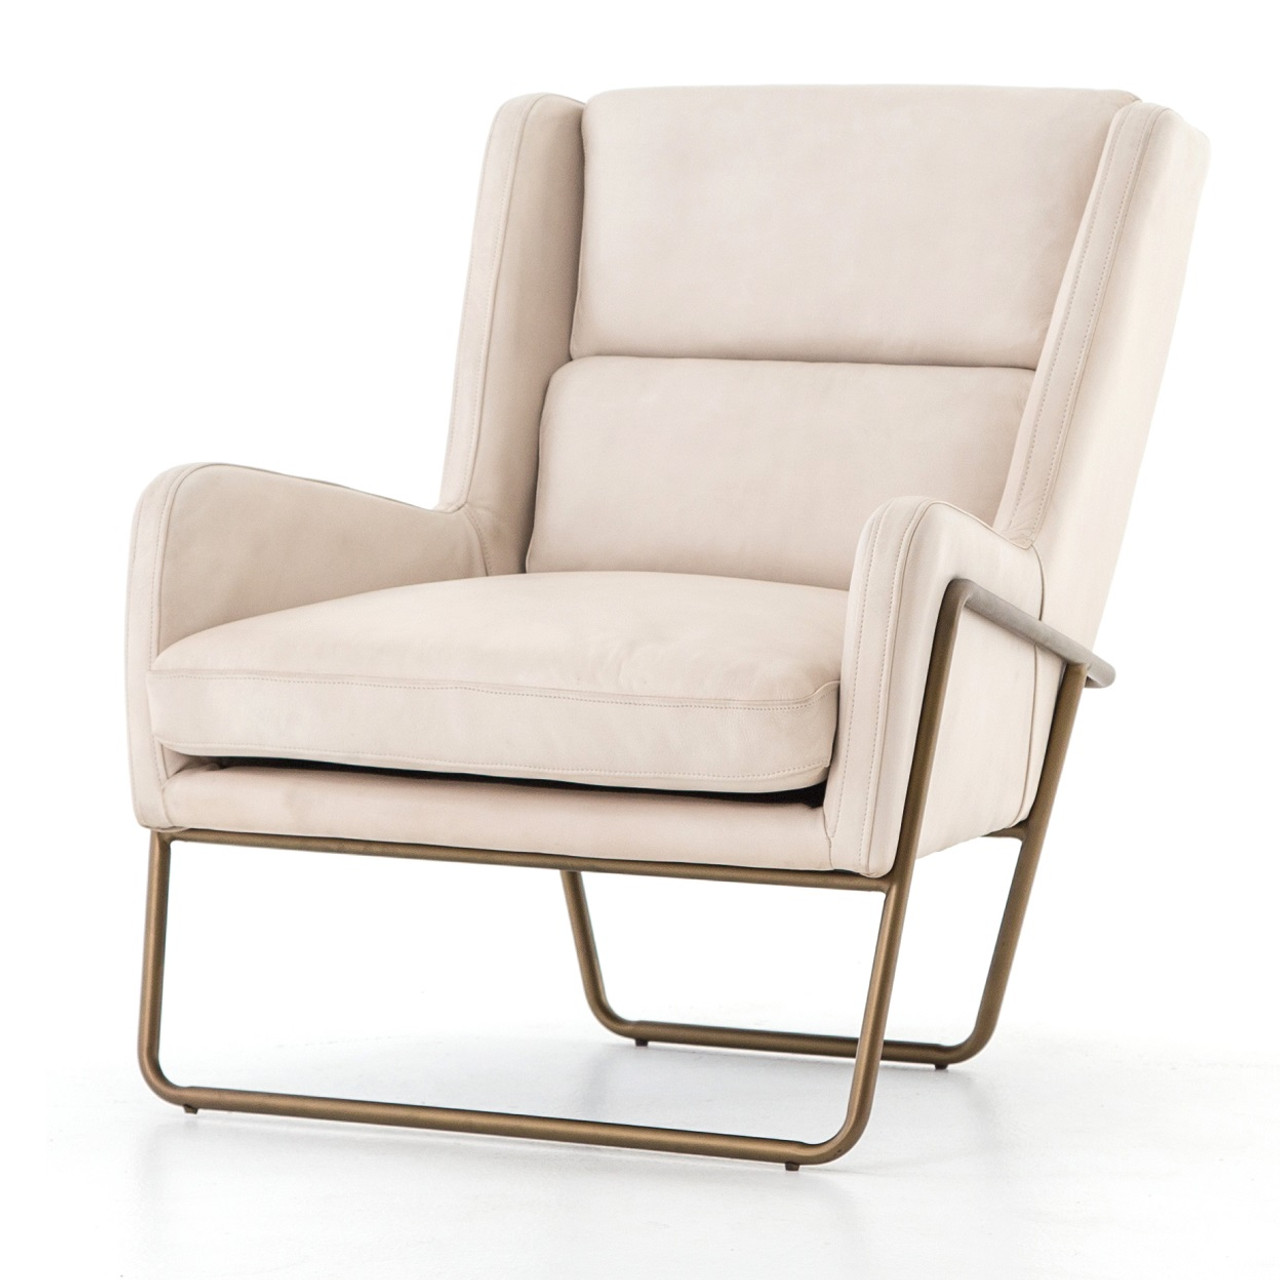 Wembley Mid Century Modern Ivory Leather Lounge Chair